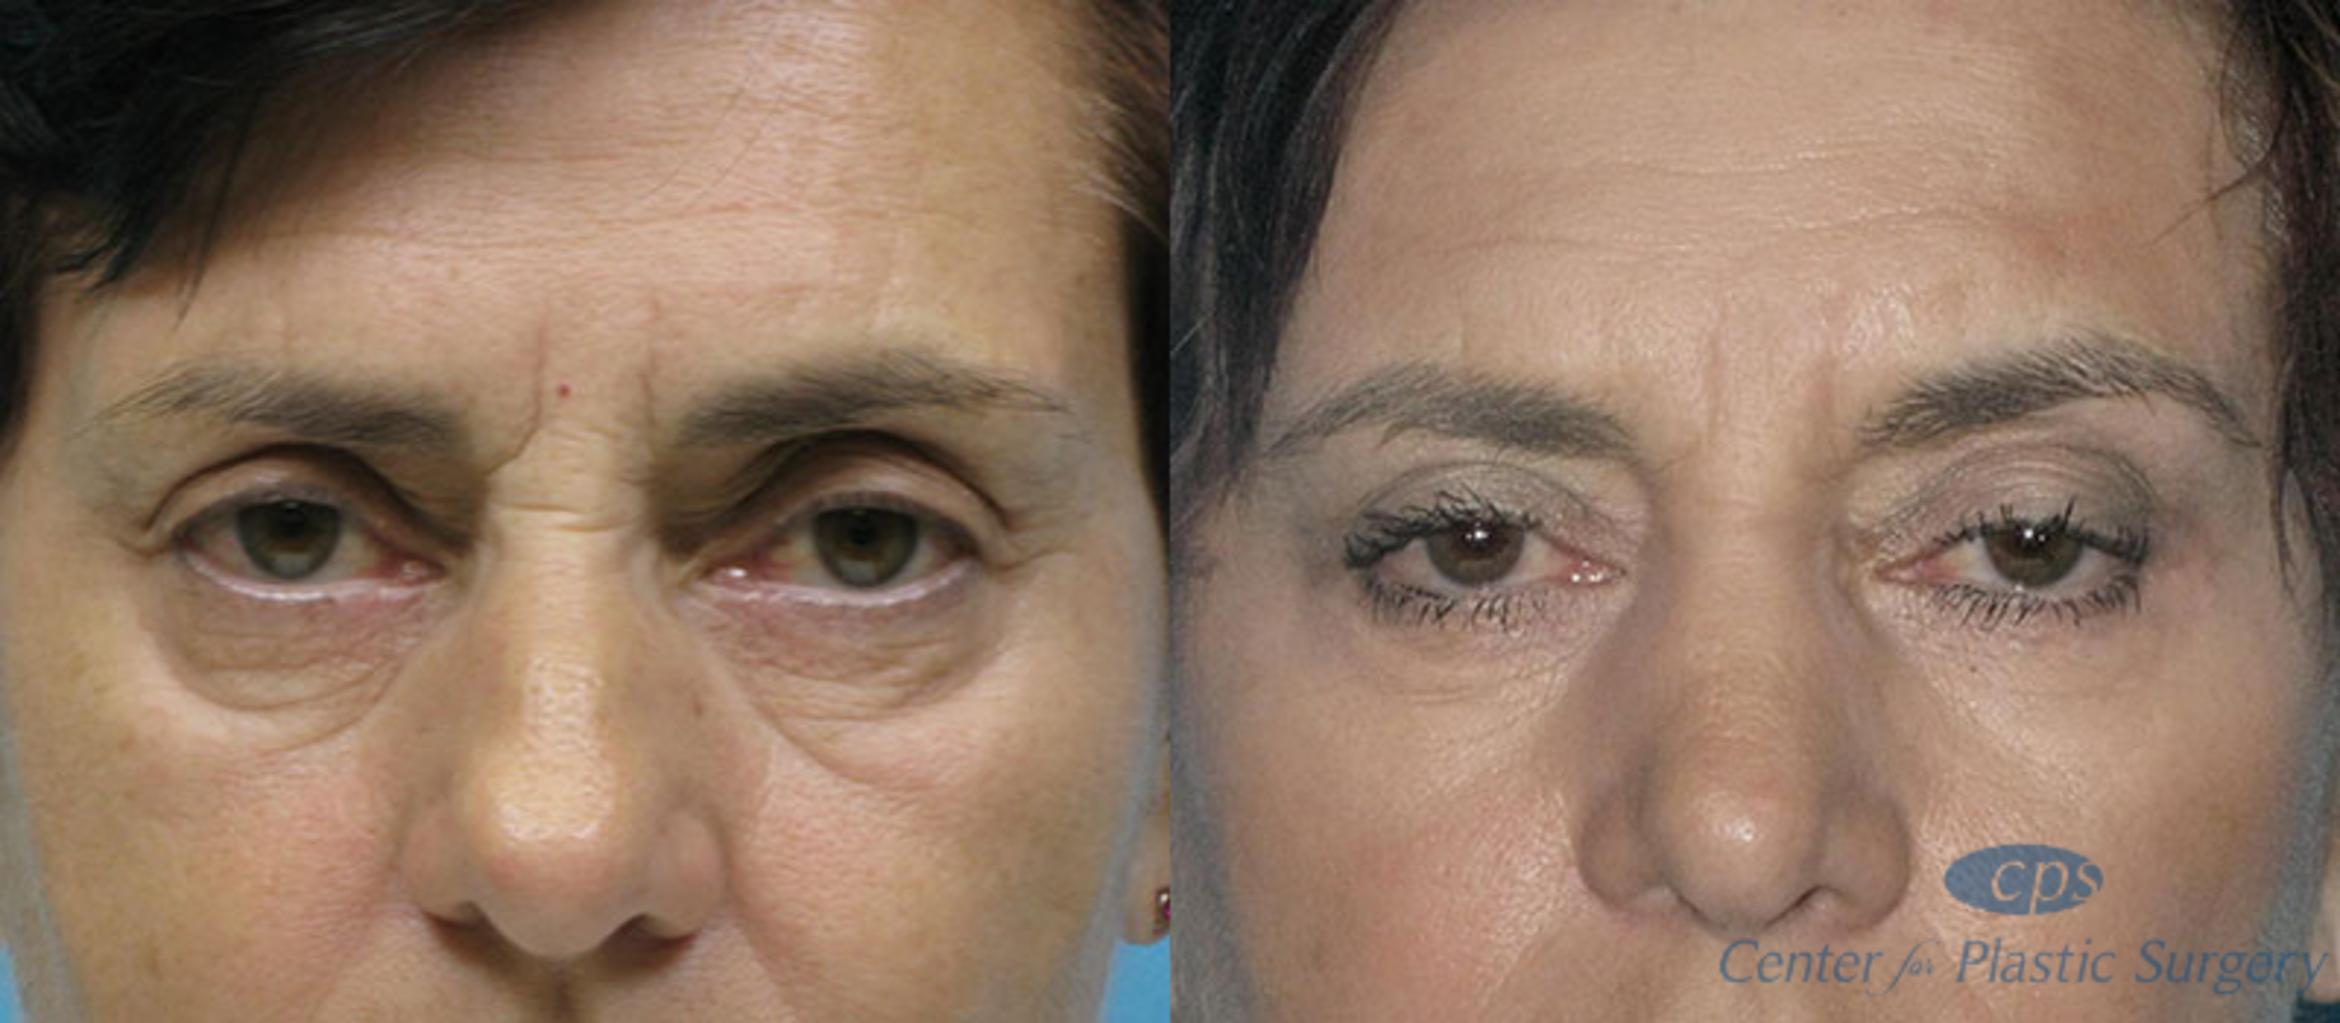 Eyelid Surgery Case 16 Before & After Front | Annandale, VA & Chevy Chase, MD, Washington D.C. Metropolitan Area | Center for Plastic Surgery